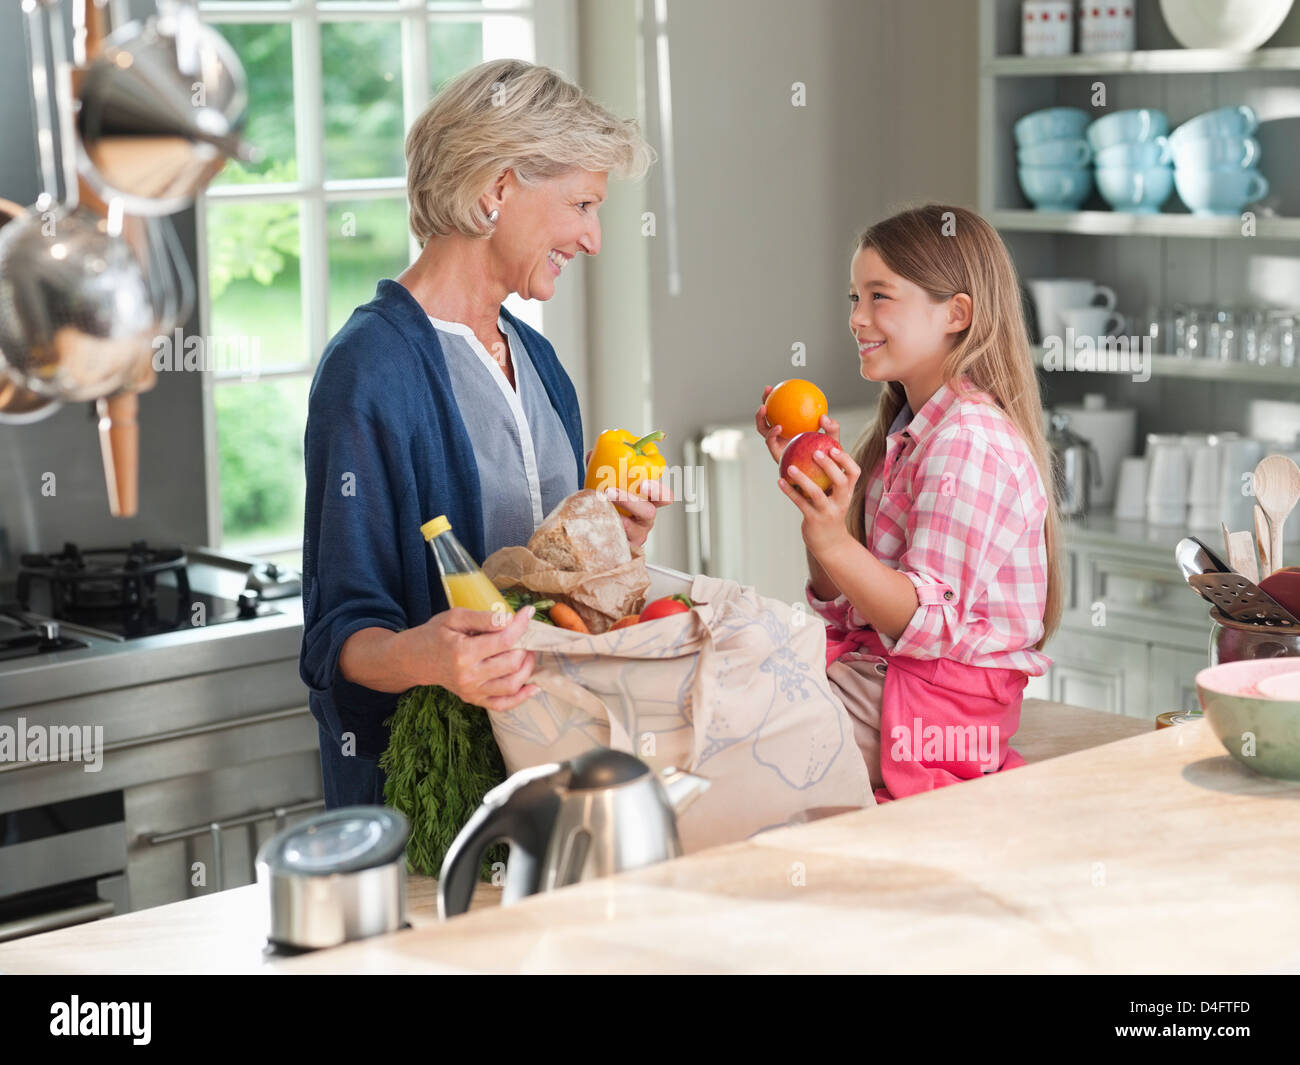 Woman and granddaughter unloading groceries - Stock Image